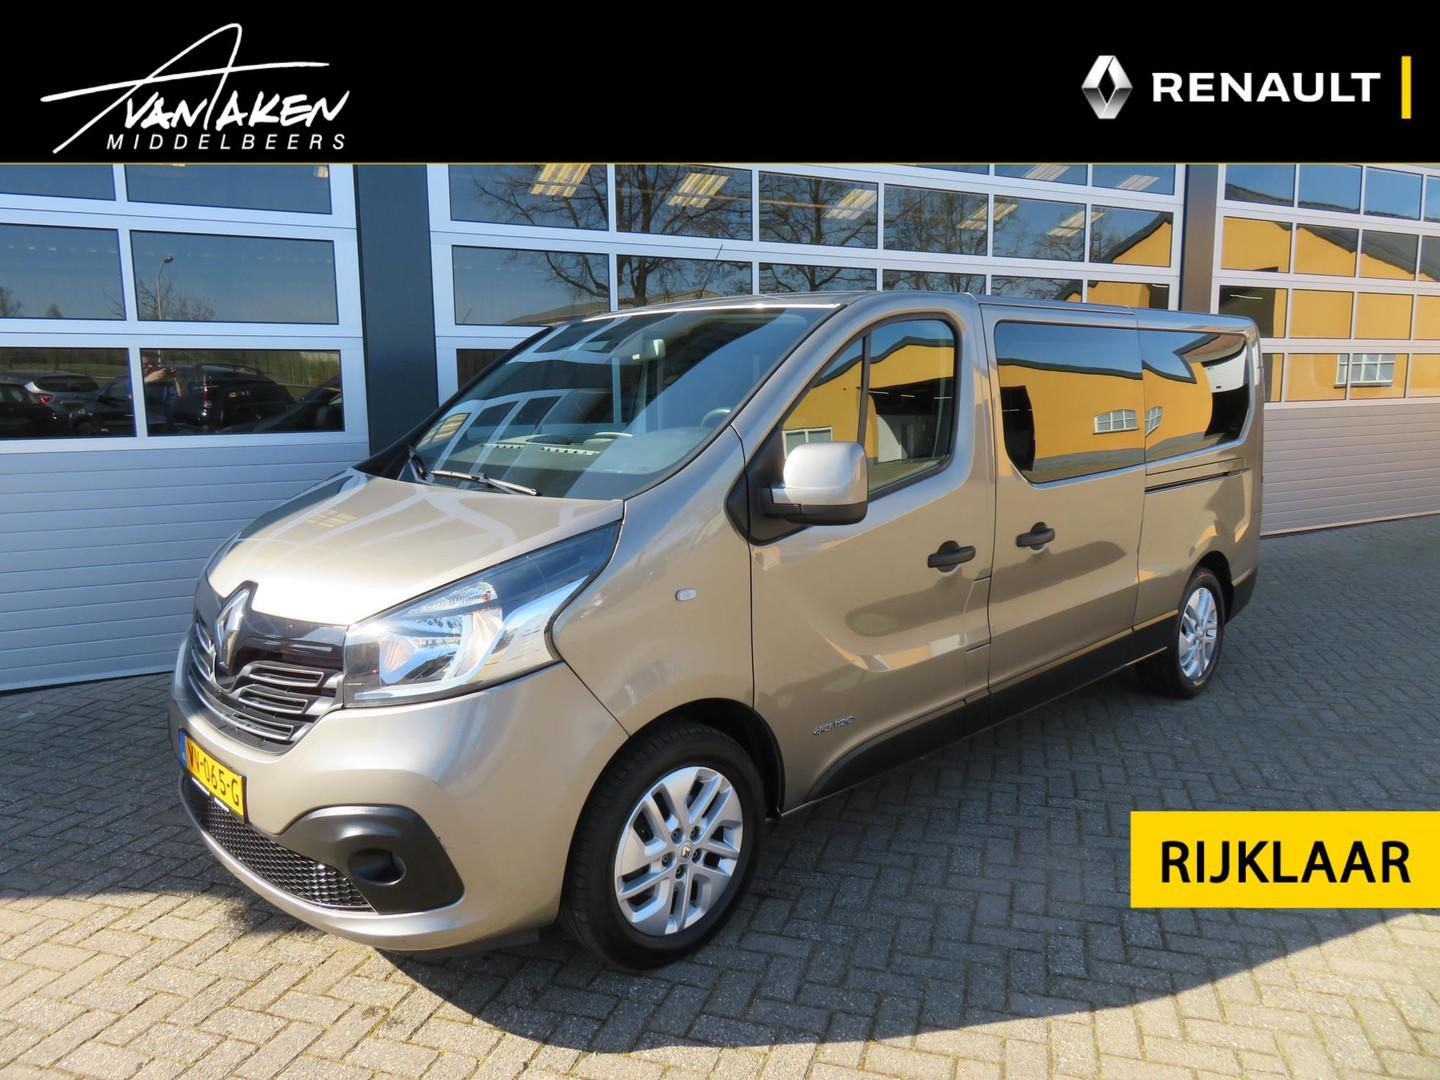 Renault Trafic Dci 120 t29 l2h1 dc luxe navigatie, airco